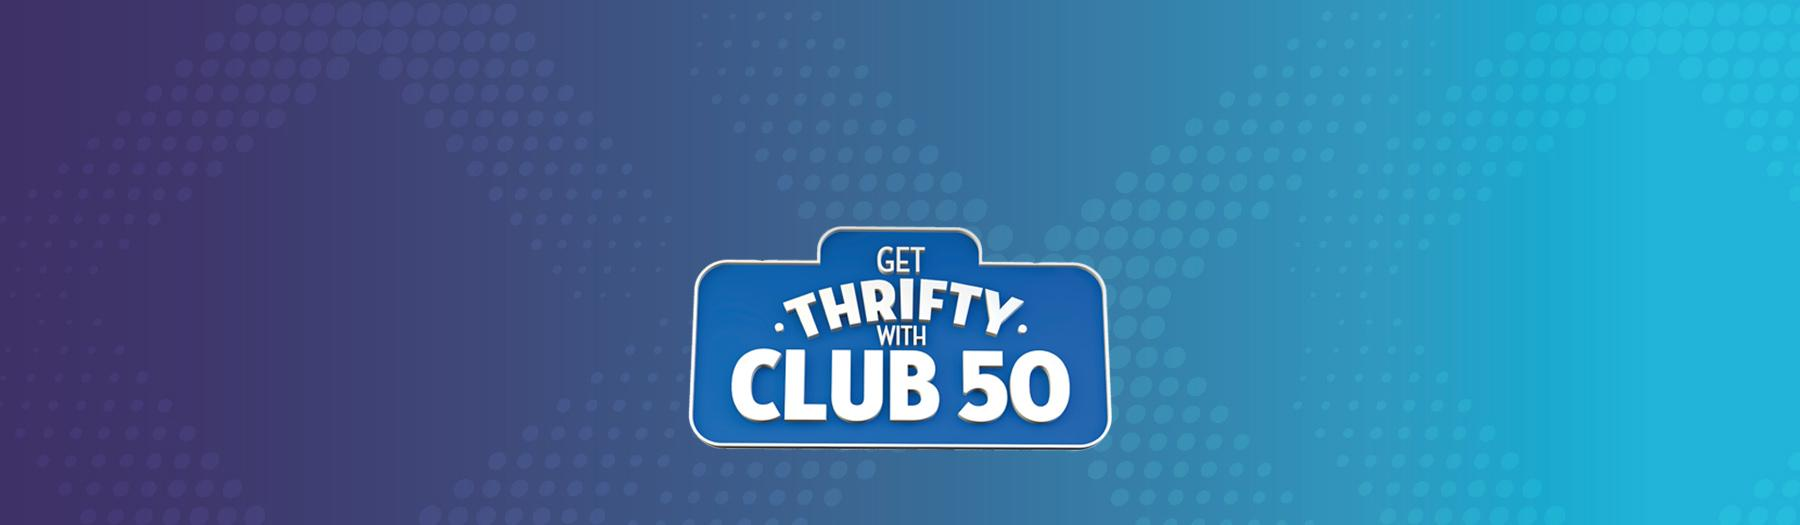 Get thrifty with Club 50